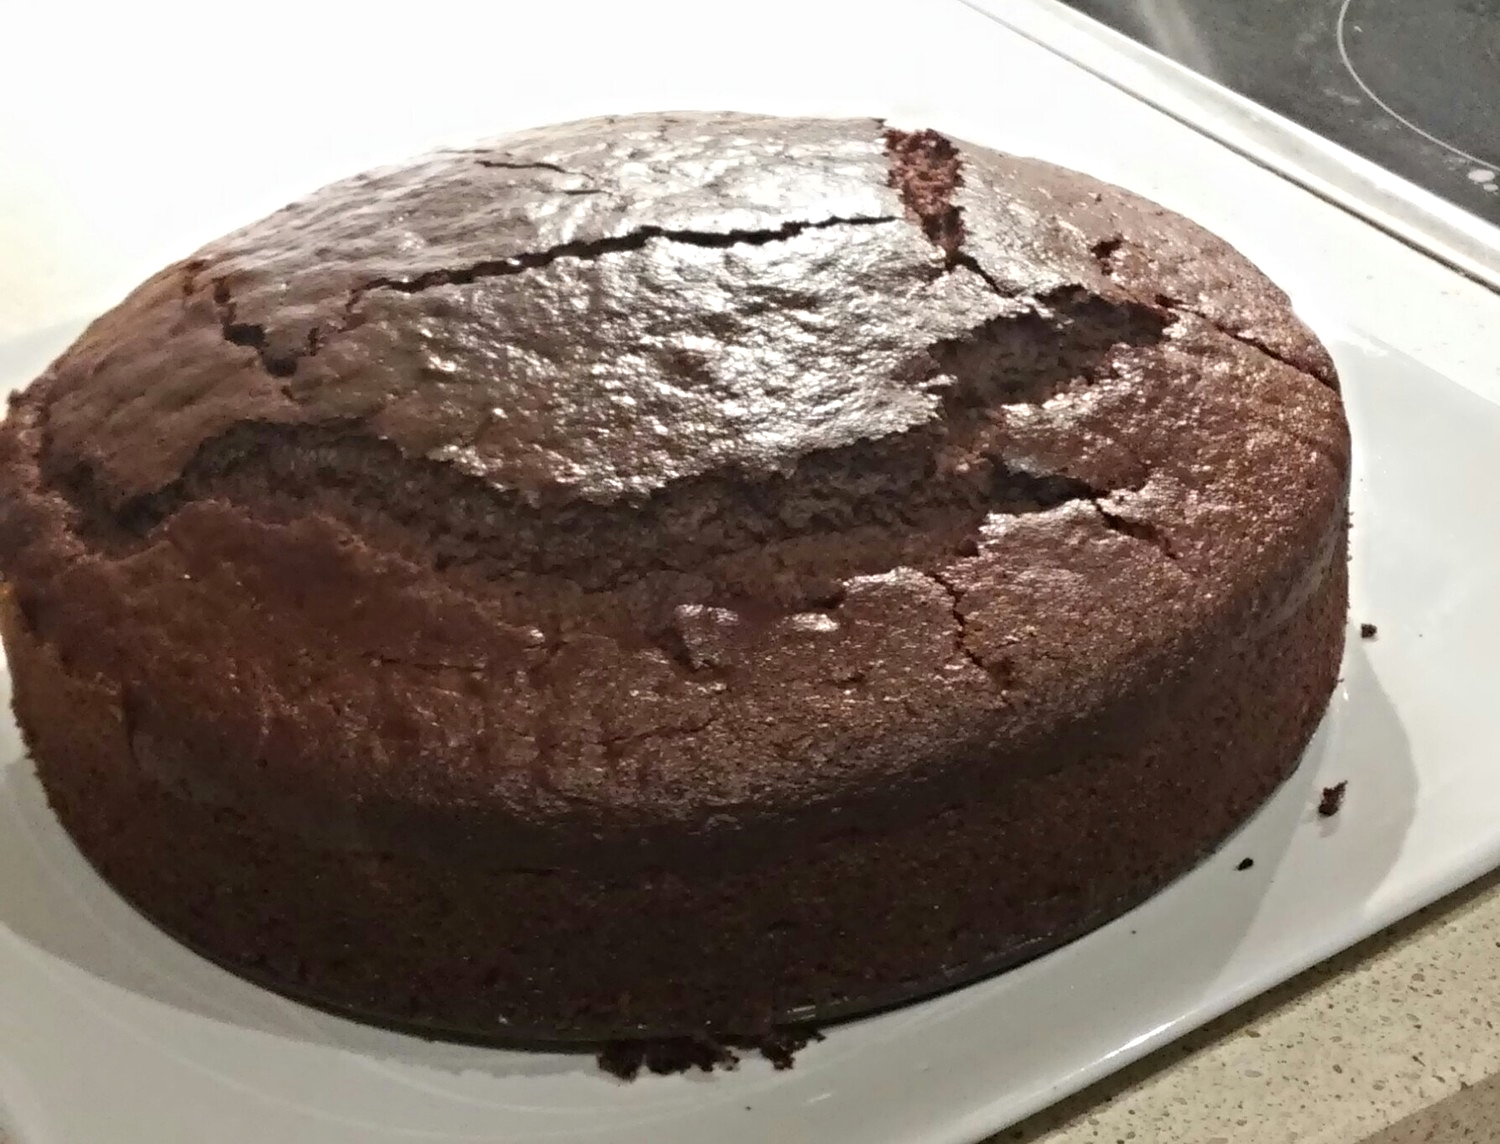 Out of the cake tin